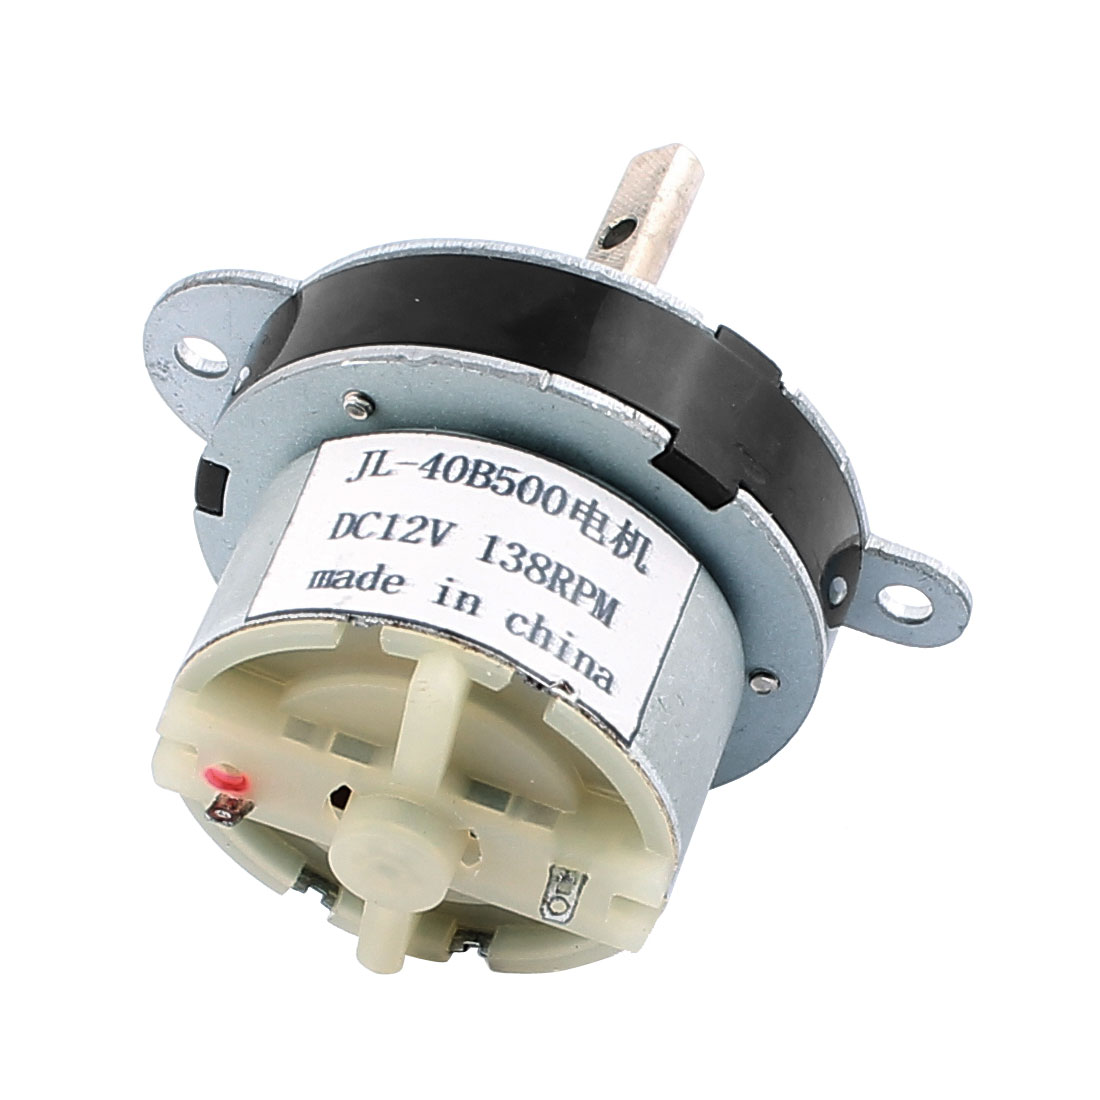 DC12V 138RPM High Torque Rotary Speed Reducing Cylinder Shaped DC Geared Motor